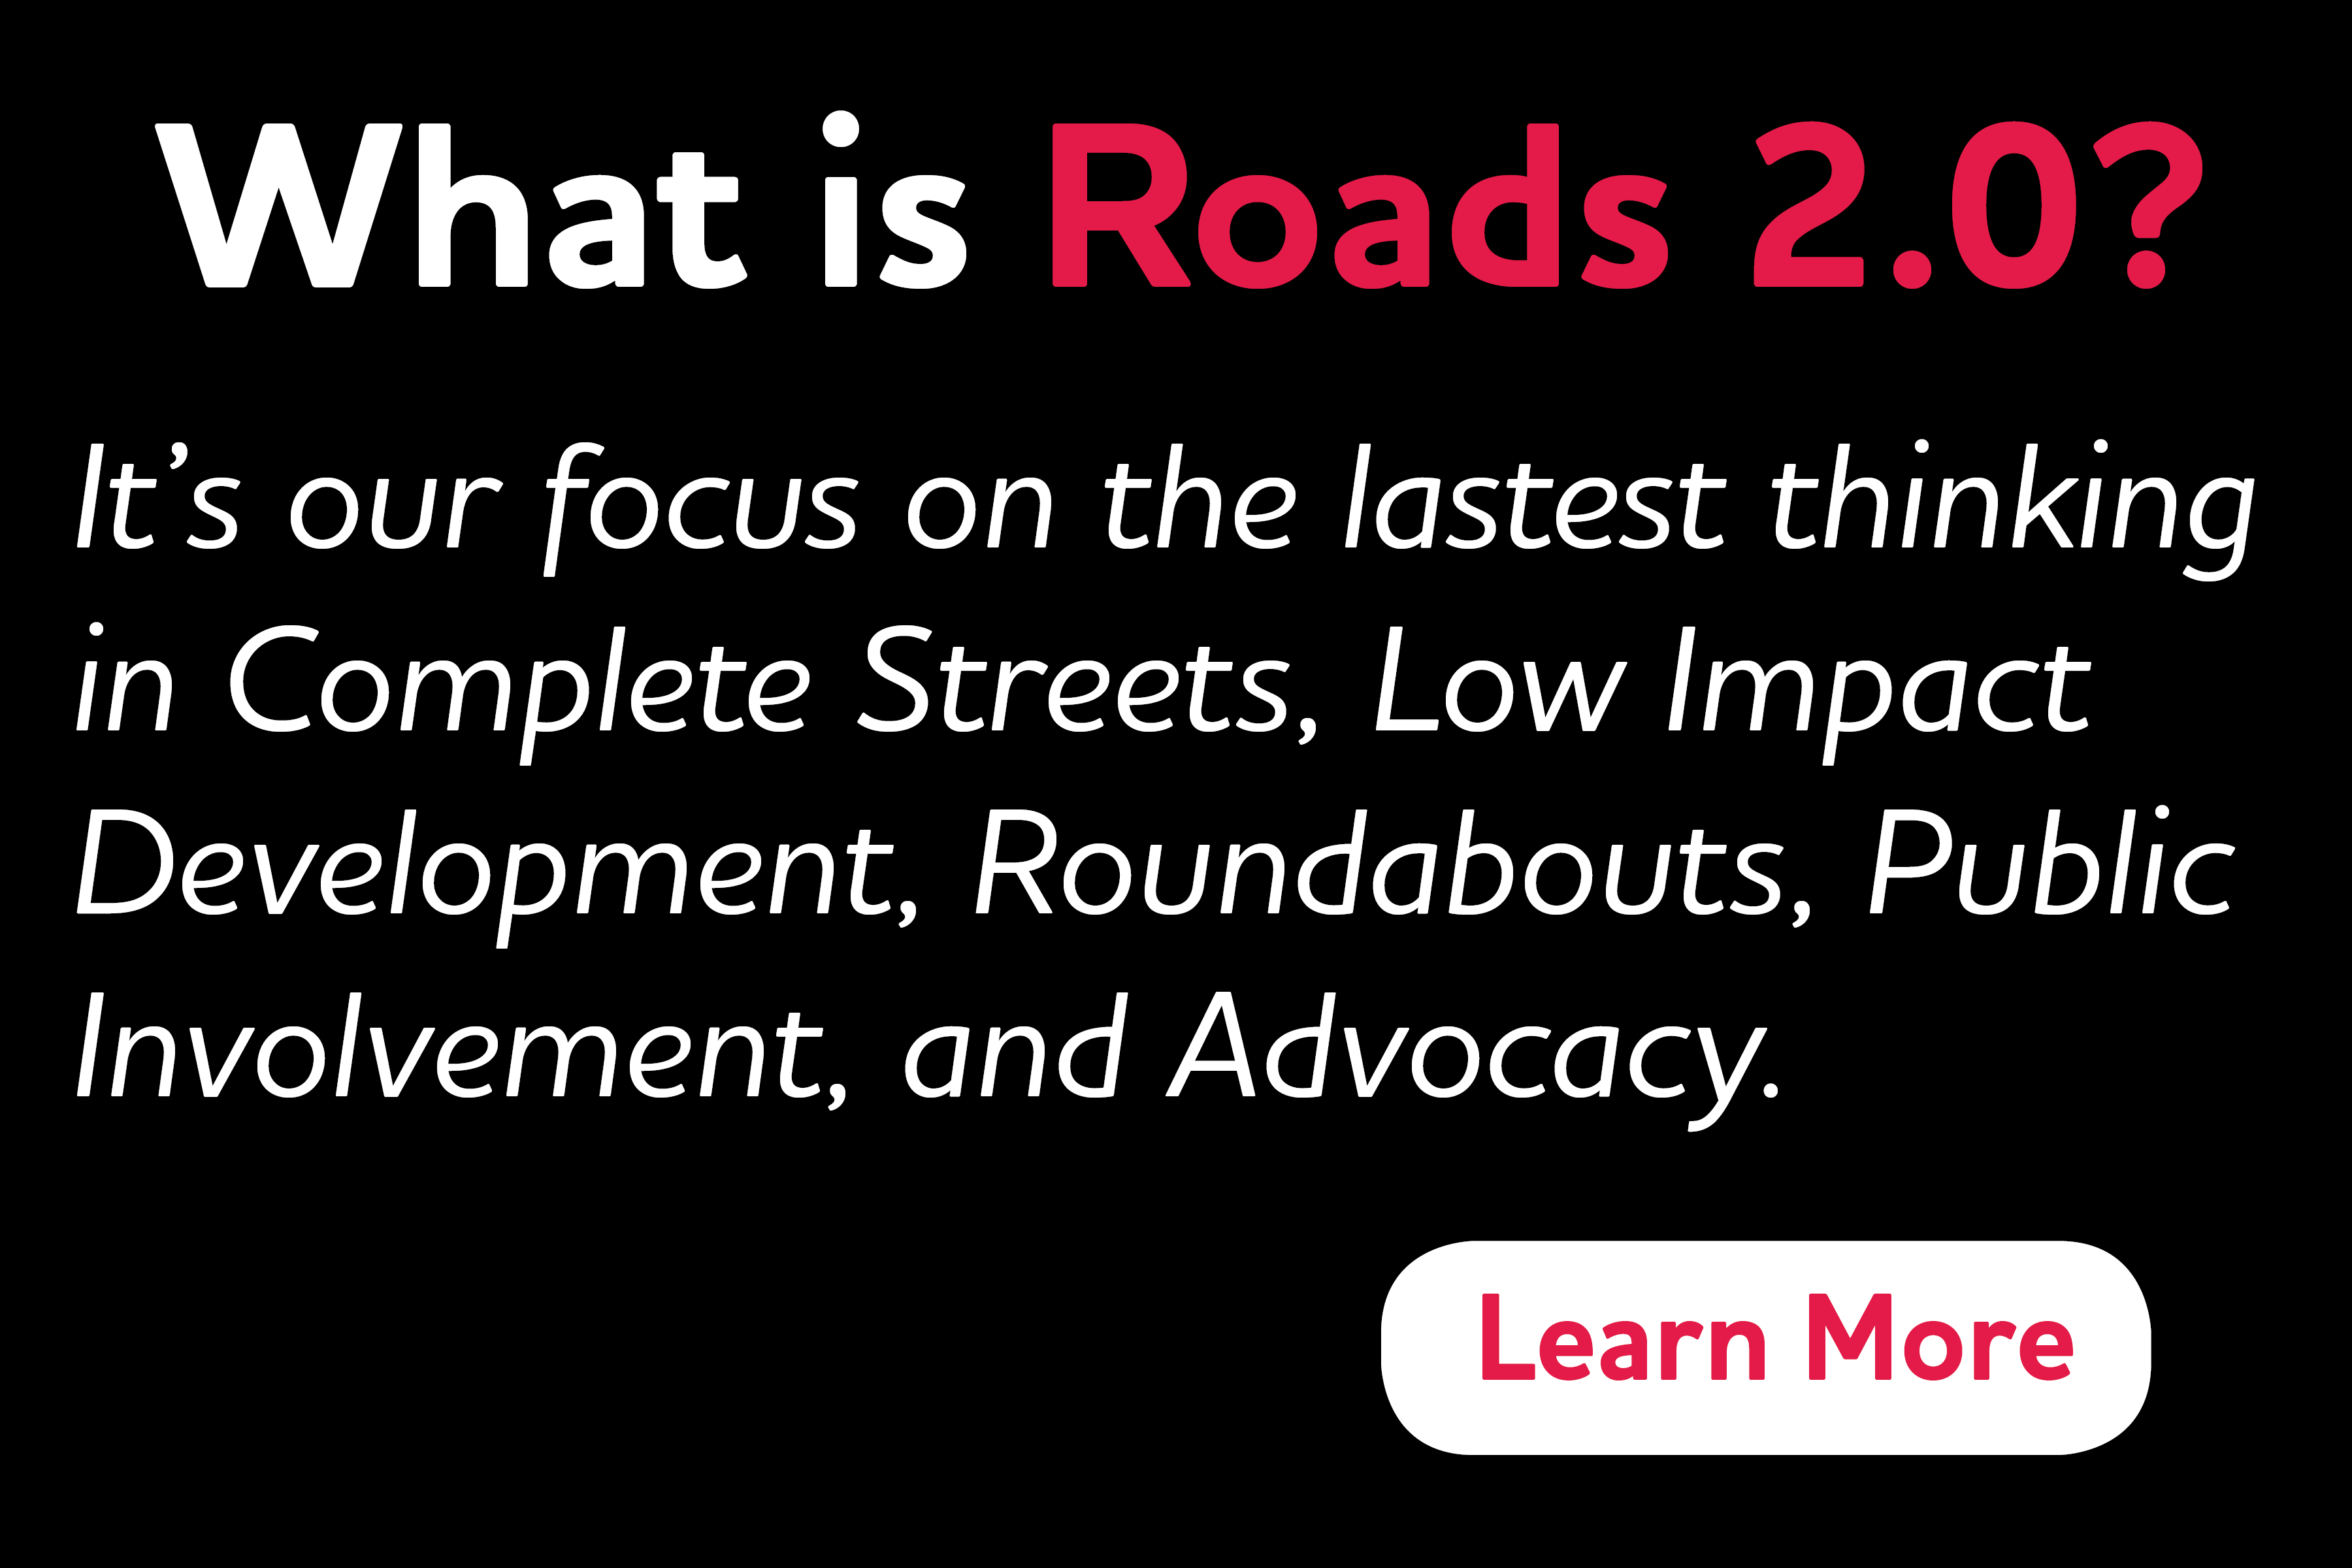 What is Roads 2.0